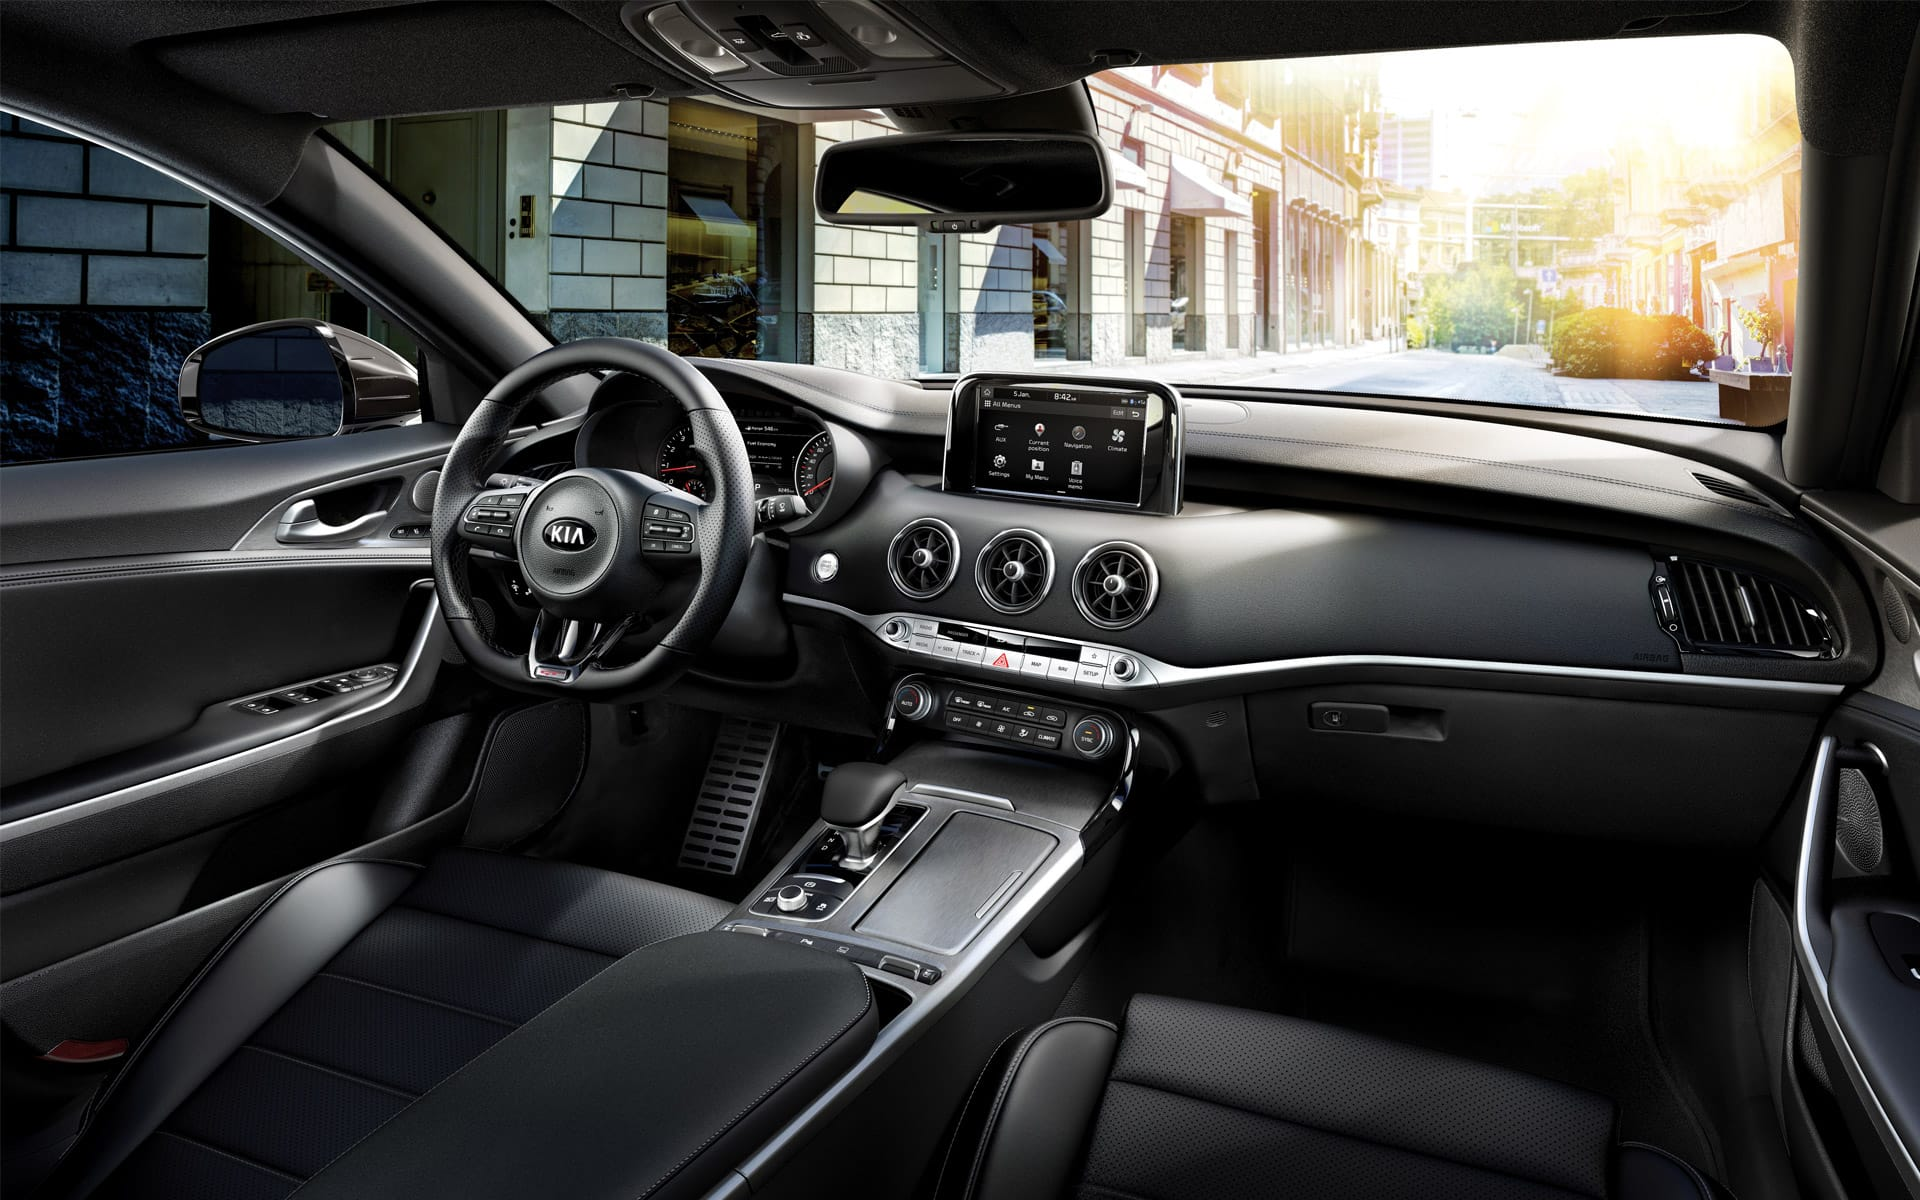 Interior OVERVIEW IMAGE